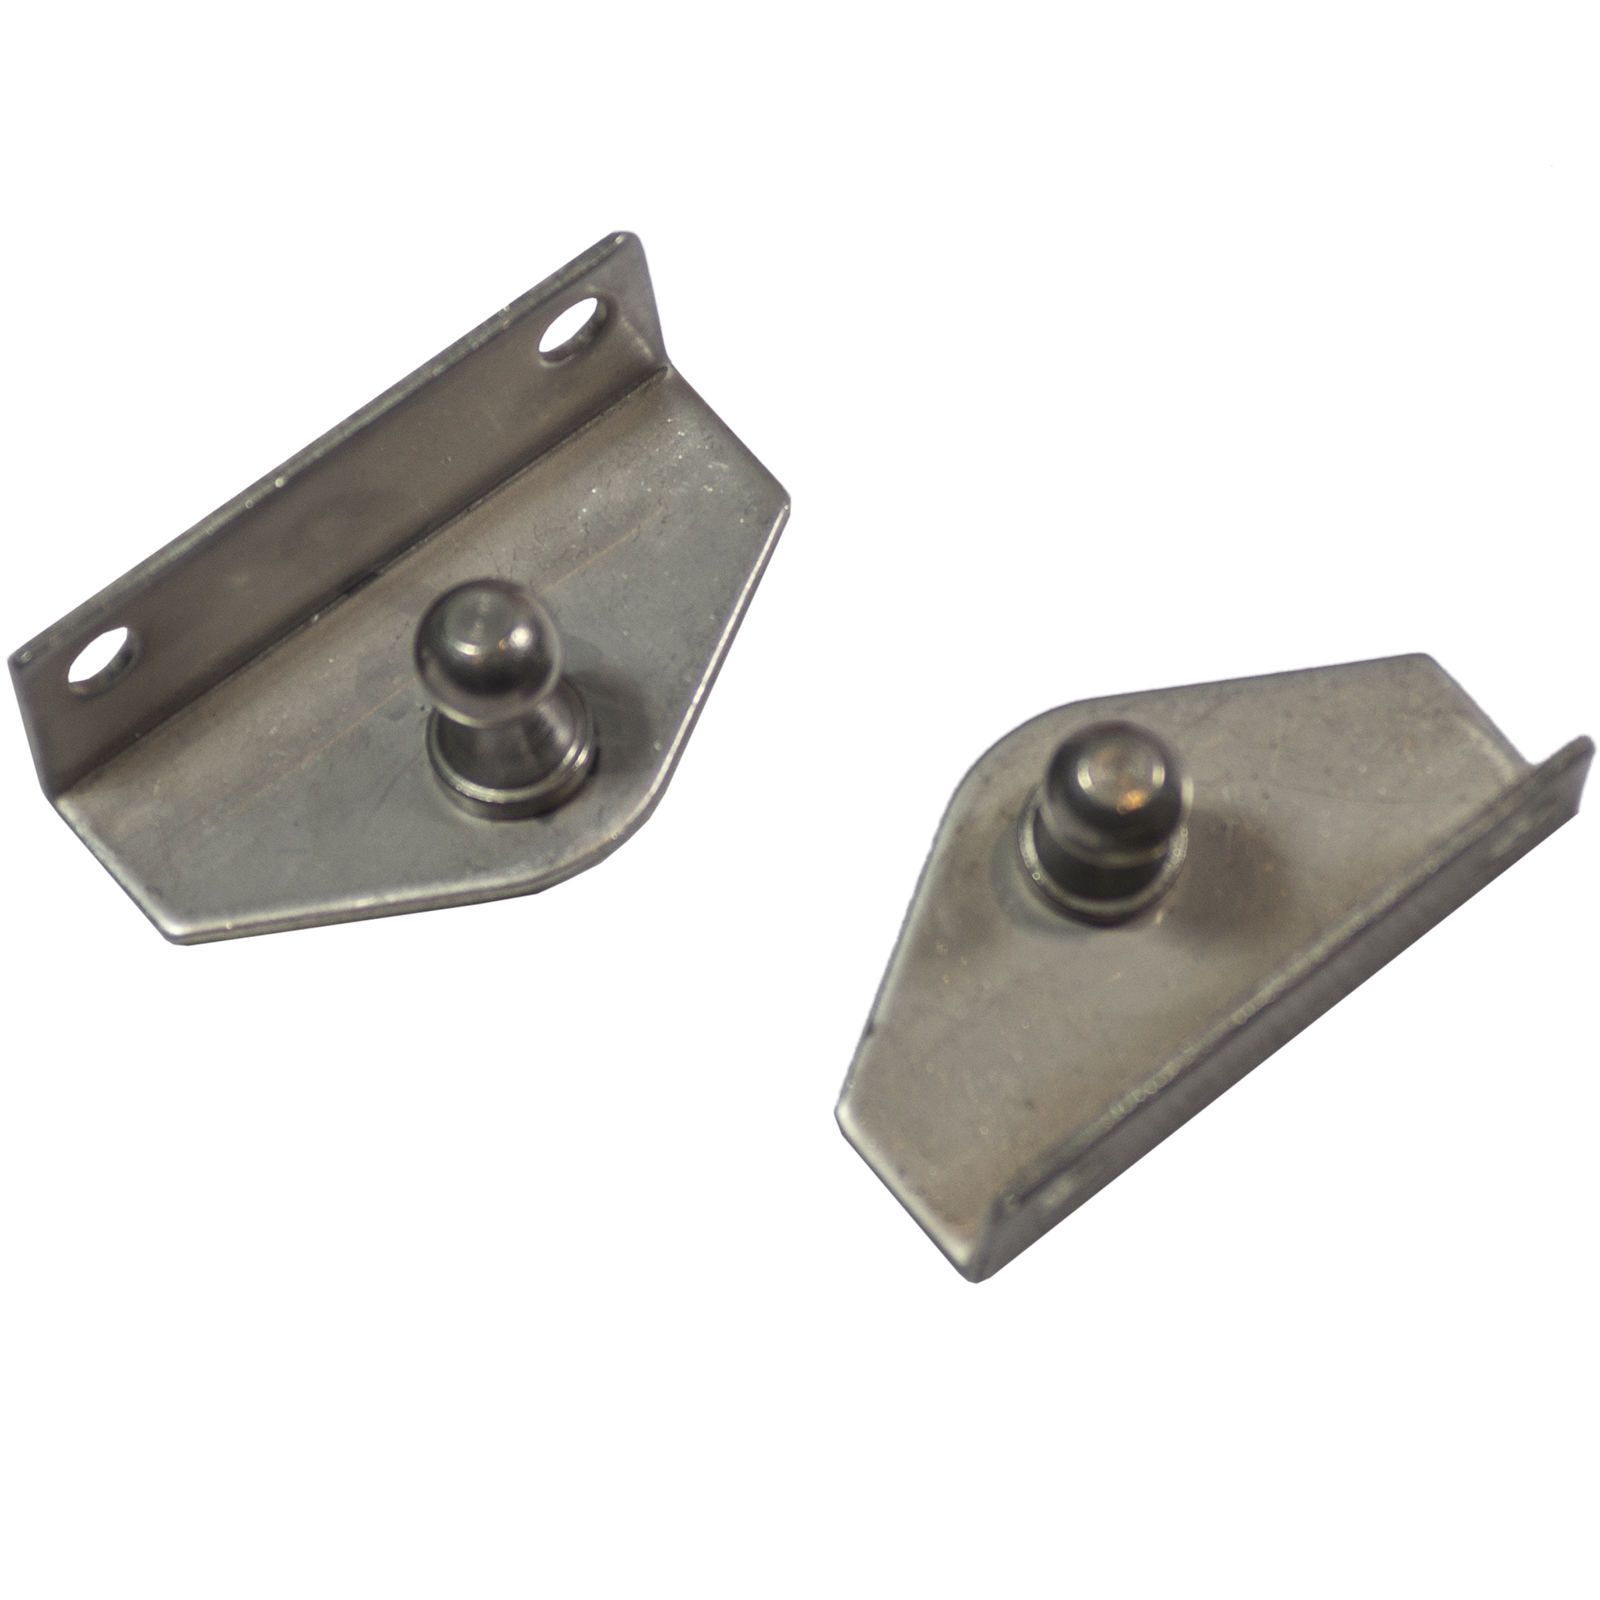 20 x 25mm Stainless Steel Gas Strut Bracket With Ball Stud